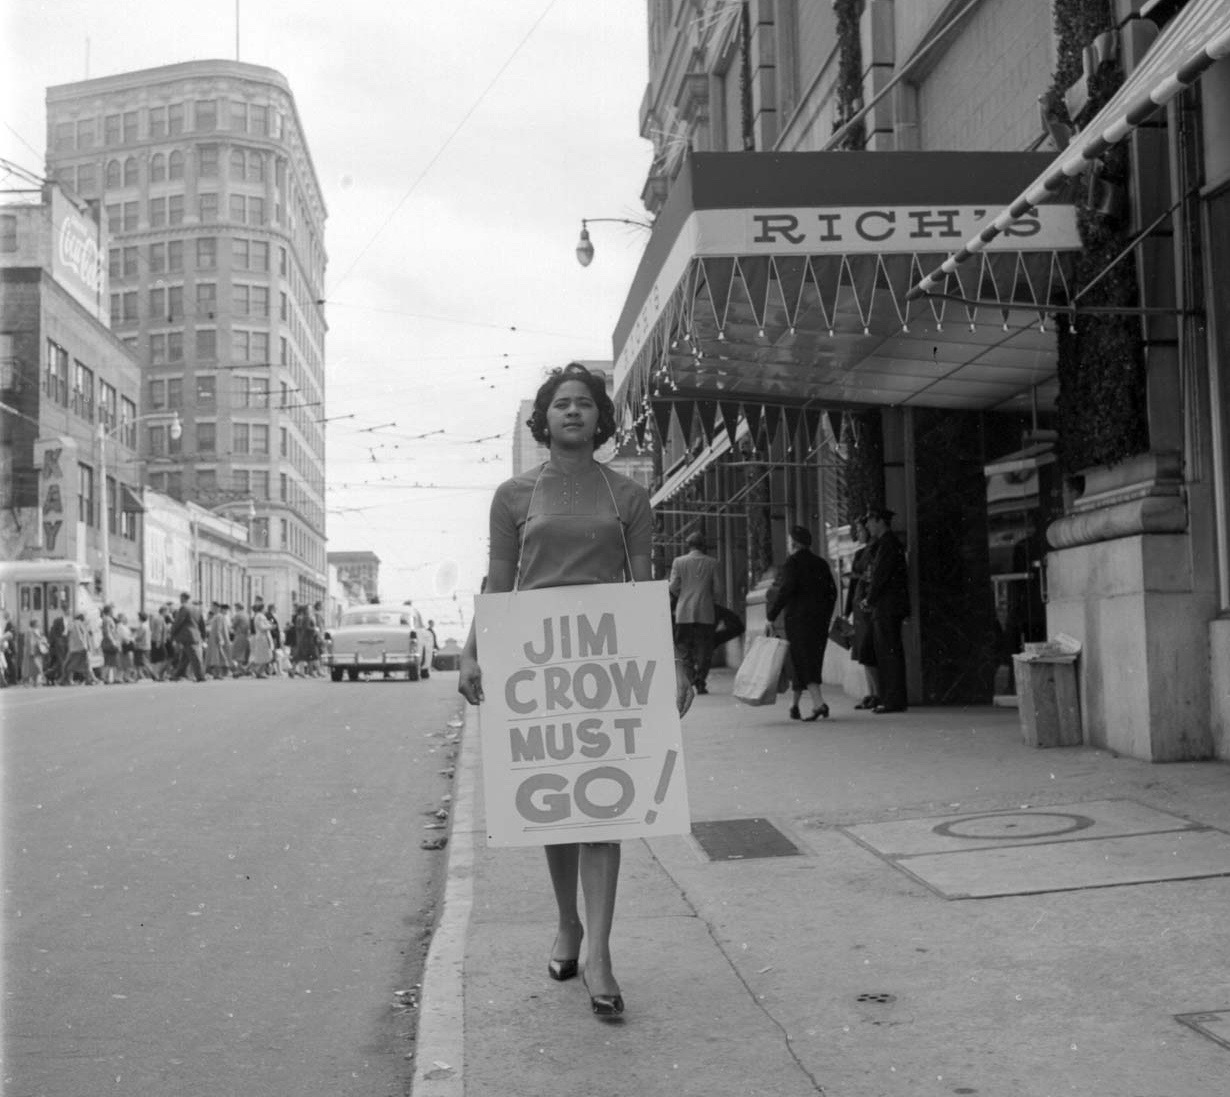 PAGE 43: INSPIRED LIKE OTHER STUDENT ACTIVISTS ATTENDING HISTORICALLY BLACK COLLEGES ACROSS THE UNITED STATES, ATLANTA UNIVERSITY CENTER STUDENTS MOBILIZED TO LAUNCH A SERIES OF DEMONSTRATIONS TO END LEGALIZED SEGREGATION IN PUBLIC FACILITIES (PERMISSION OF THE HENDON HOME MUSEUM).